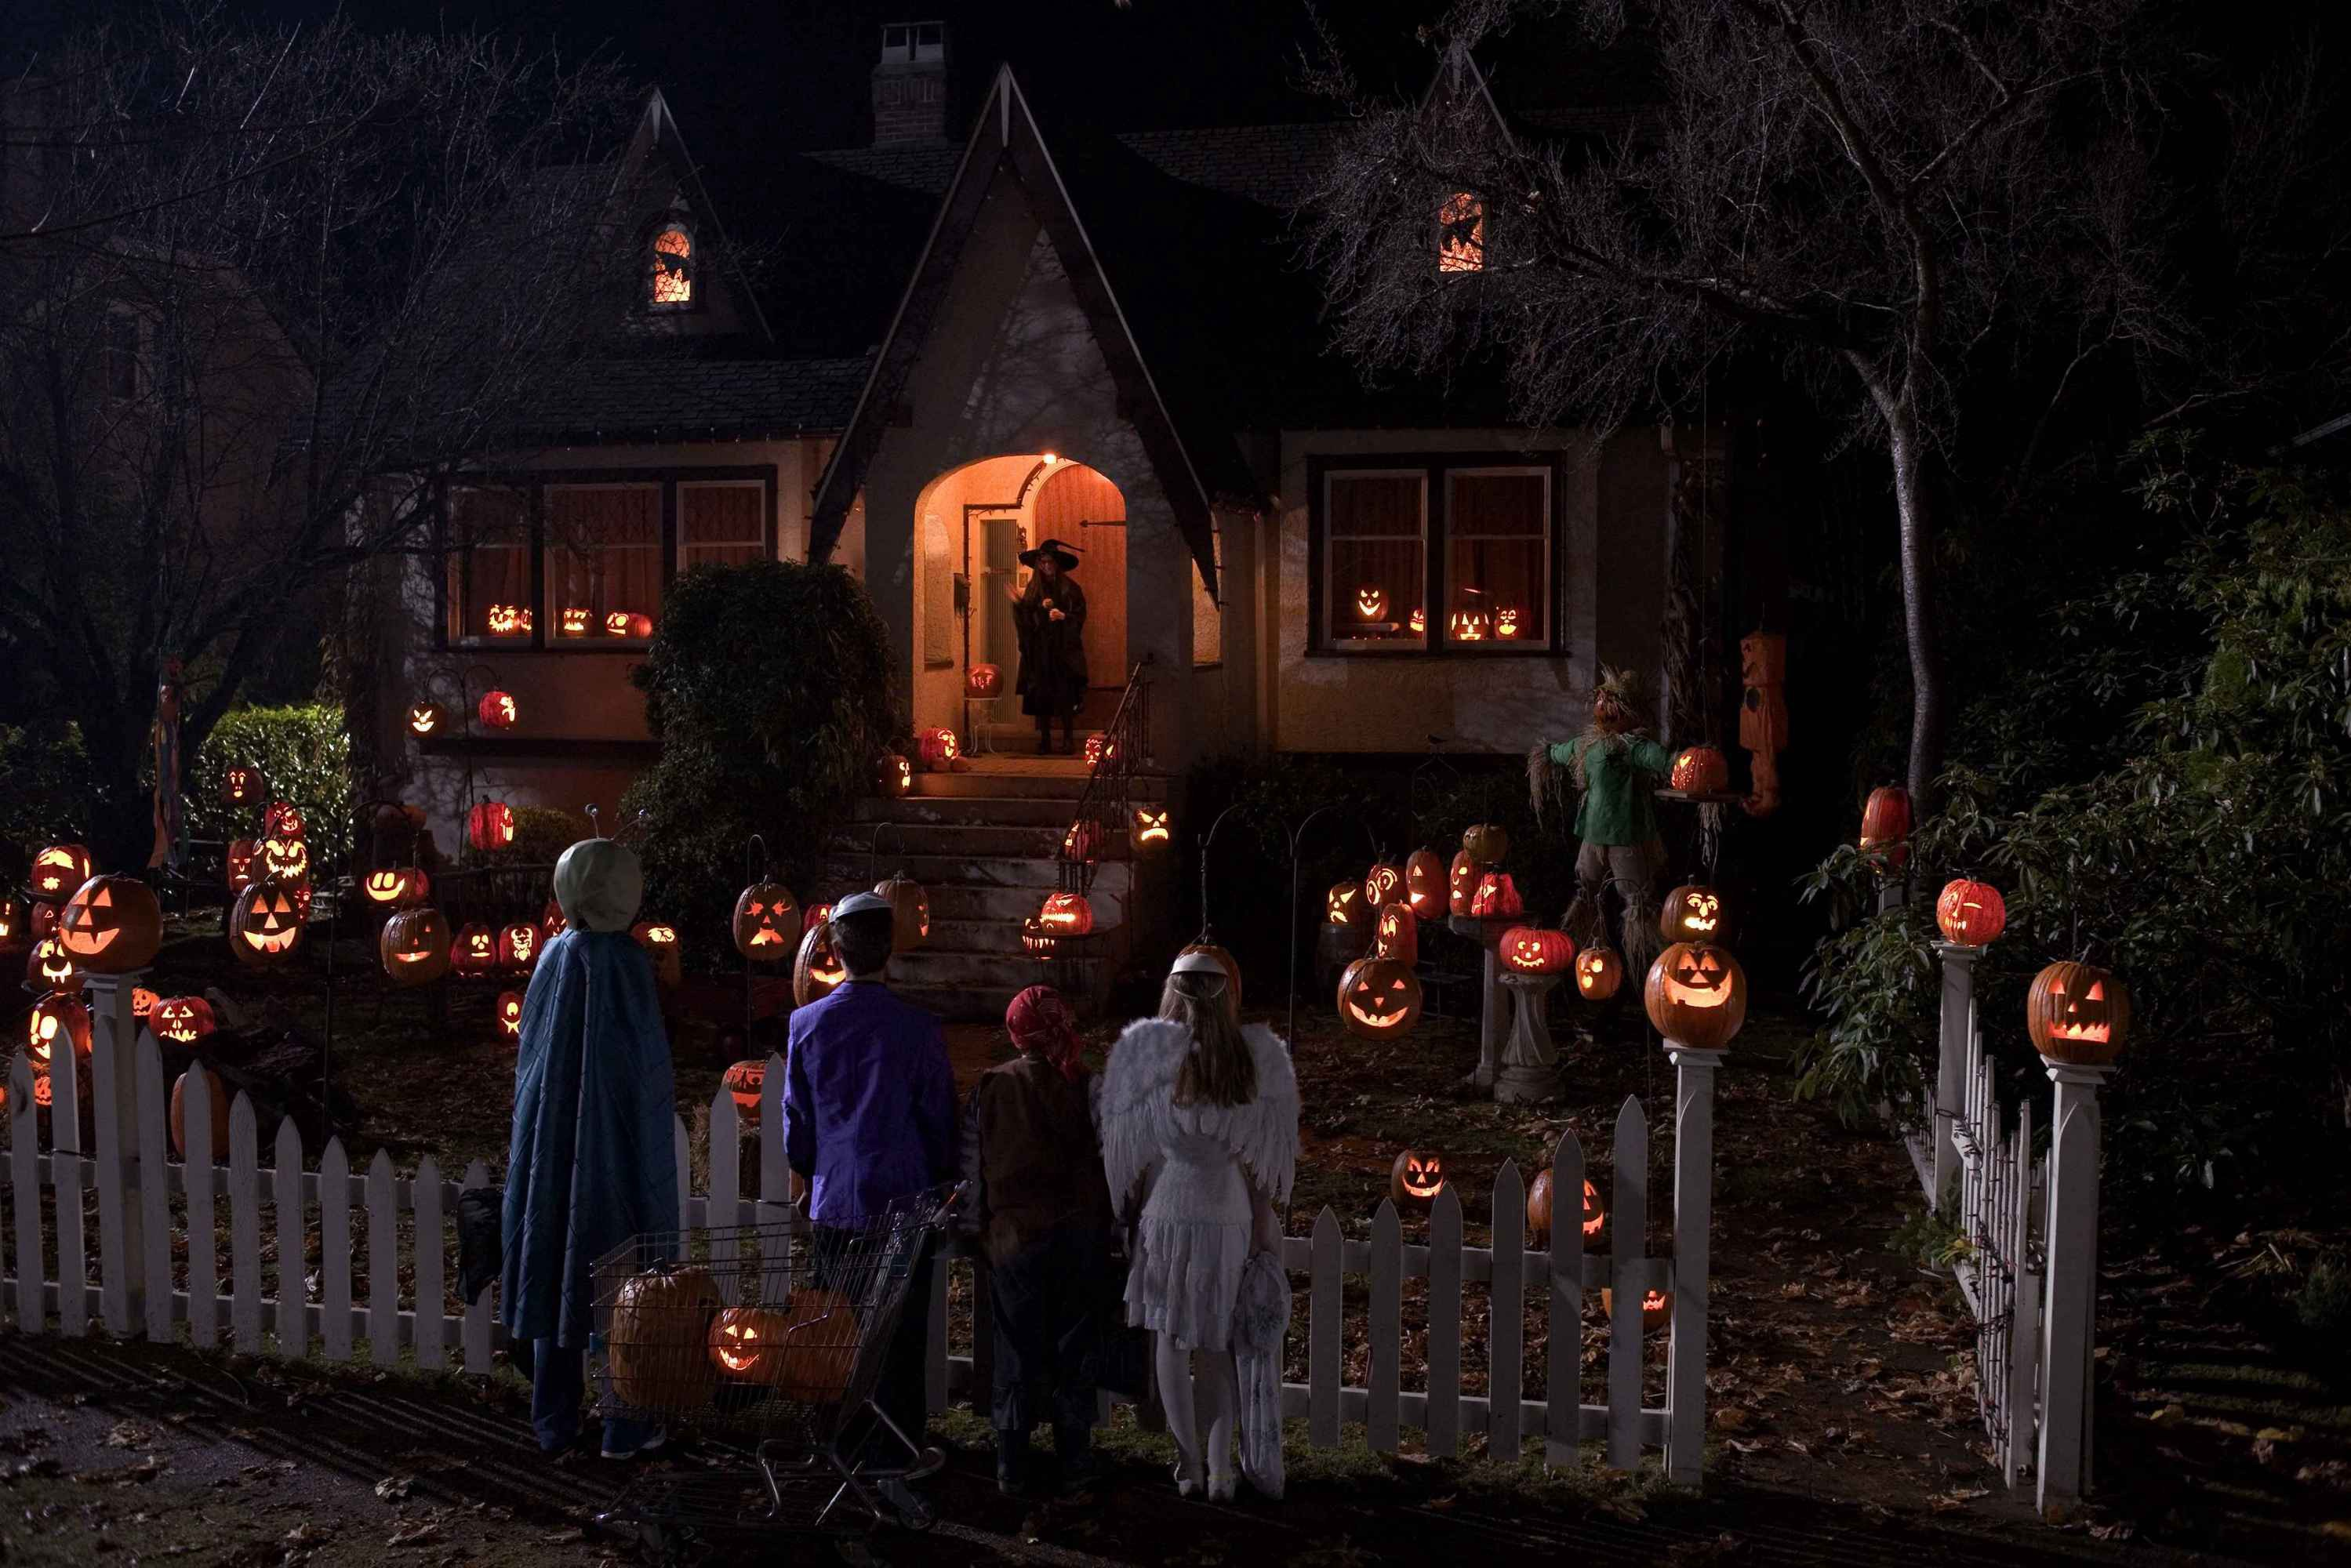 A scene from Trick 'r Treat